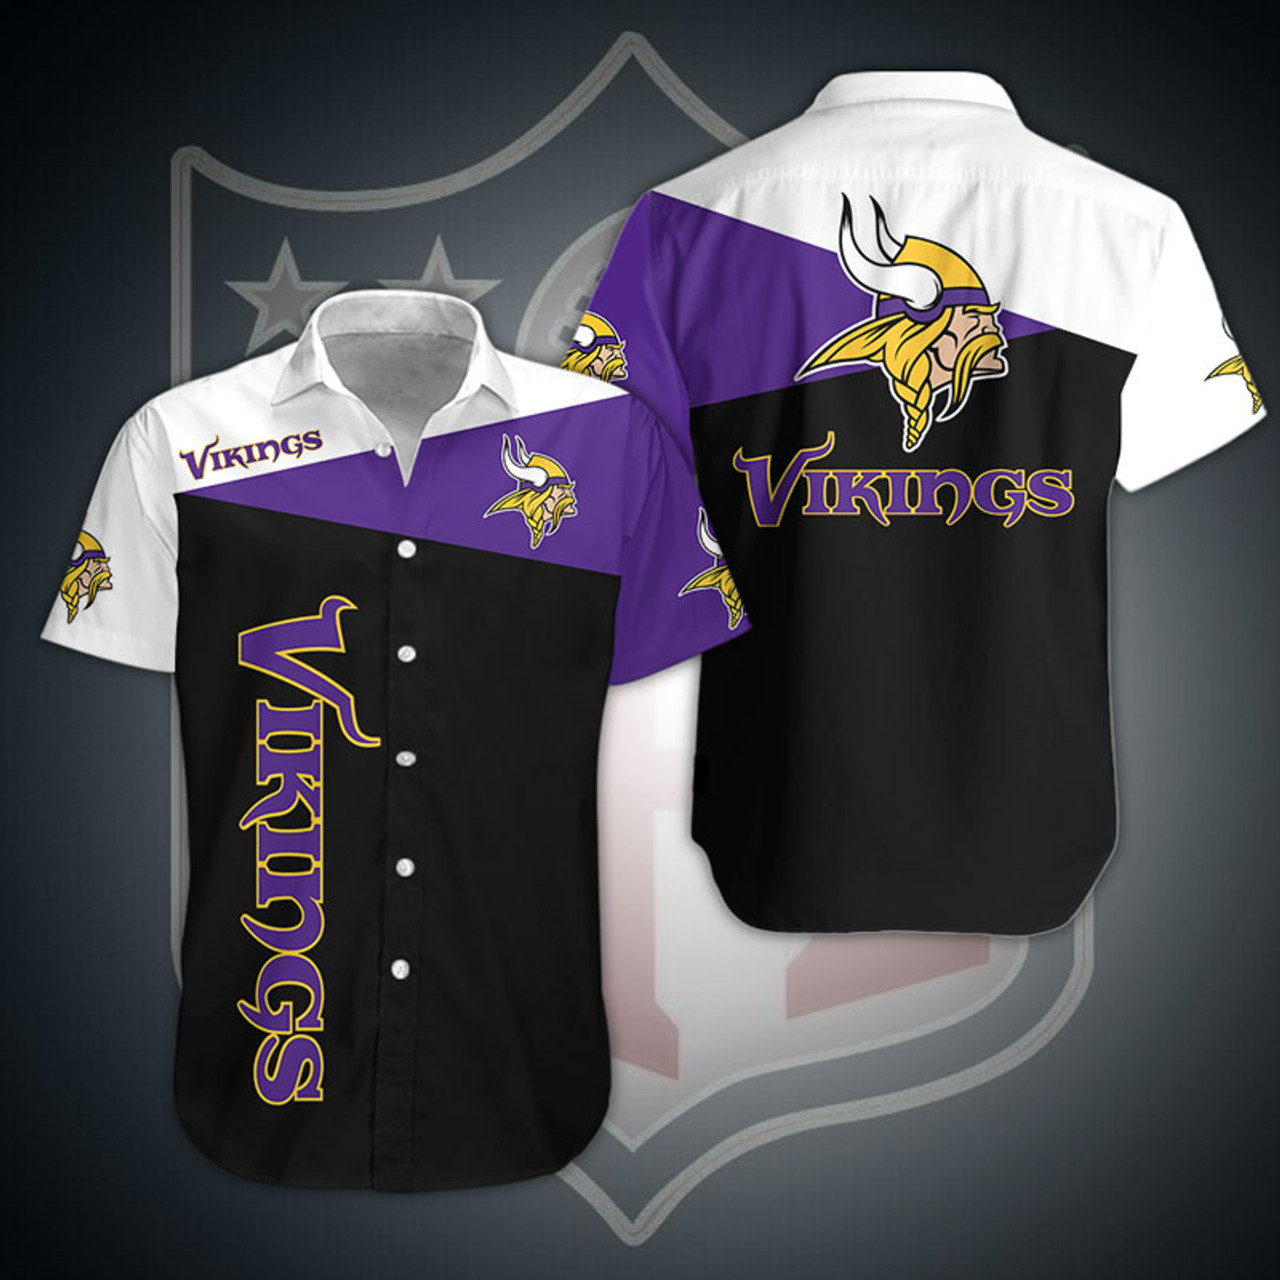 **(OFFICIAL-N.F.L.MINNESOTA-VIKINGS-FASHION-BUTTON-FRONT-SPORT-SHIRTS/CUSTOM-3D-GRAPHIC-PRINTED-DETAILED-DOUBLE-SIDED-ALL-OVER/CLASSIC-OFFICIAL-VIKINGS-LOGOS & OFFICIAL-VIKINGS-TEAM-COLORS/PREMIUM-OFFICIAL-N.F.L.VIKINGS-TEAM-BUTTON-SPORT-SHIRTS)**